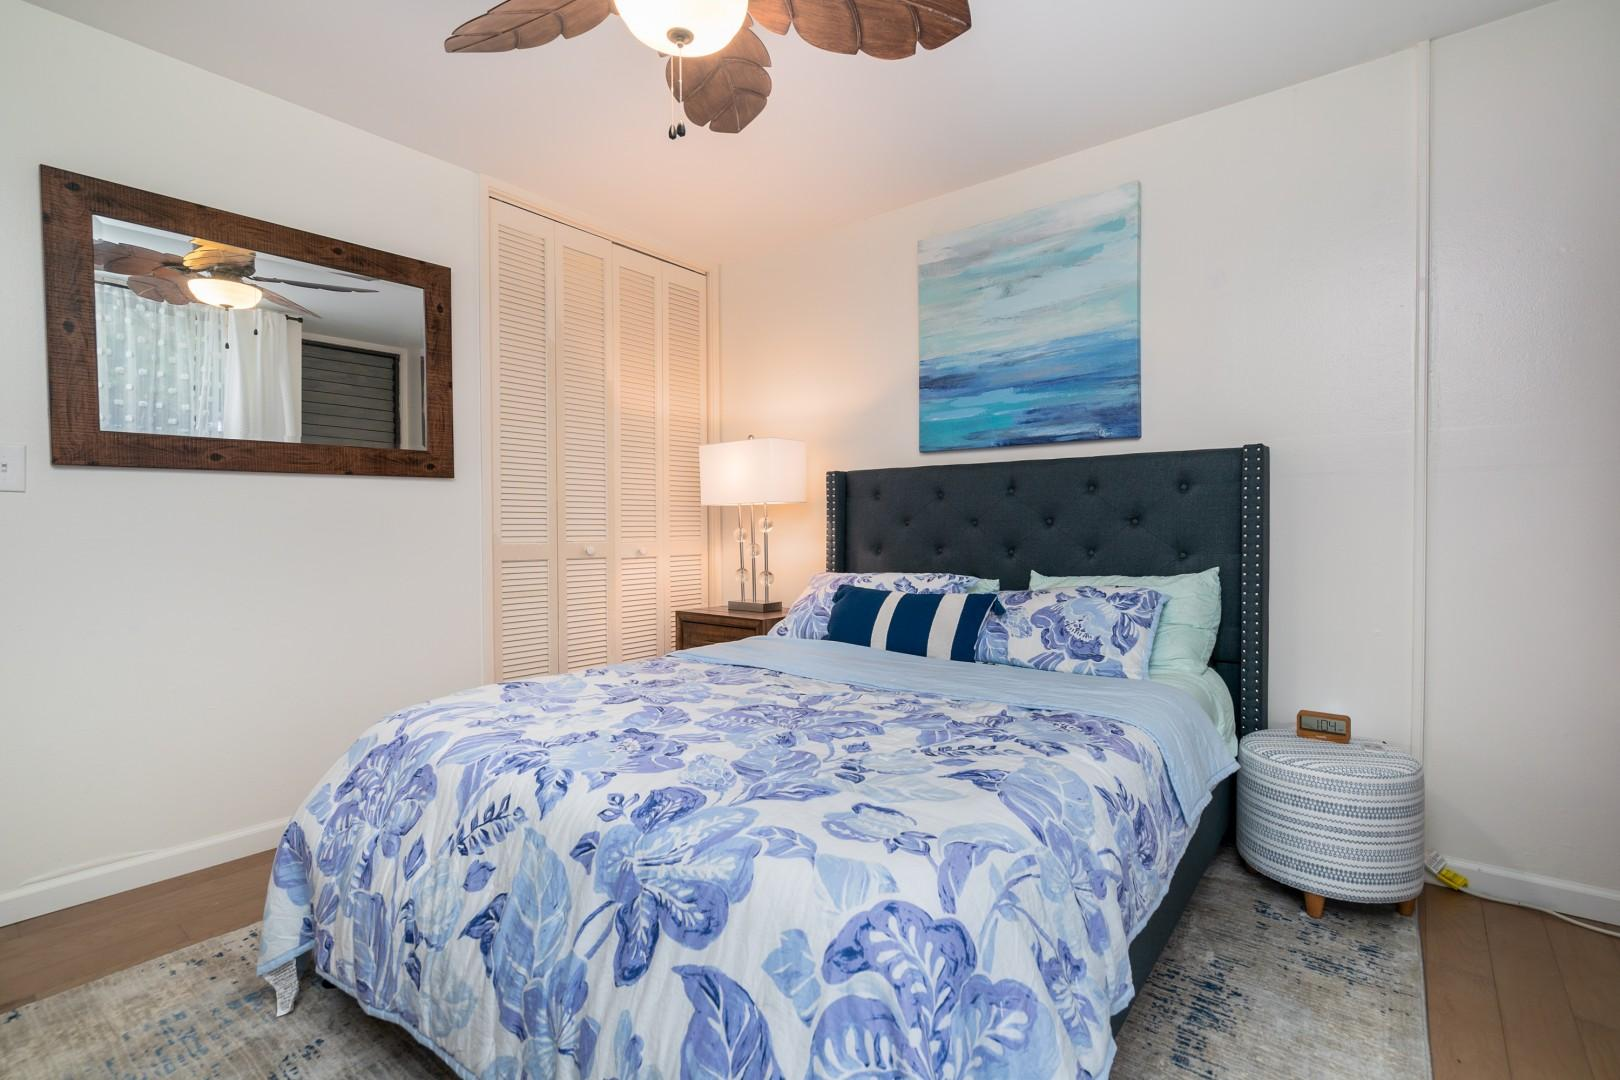 Another view of the guest bedroom